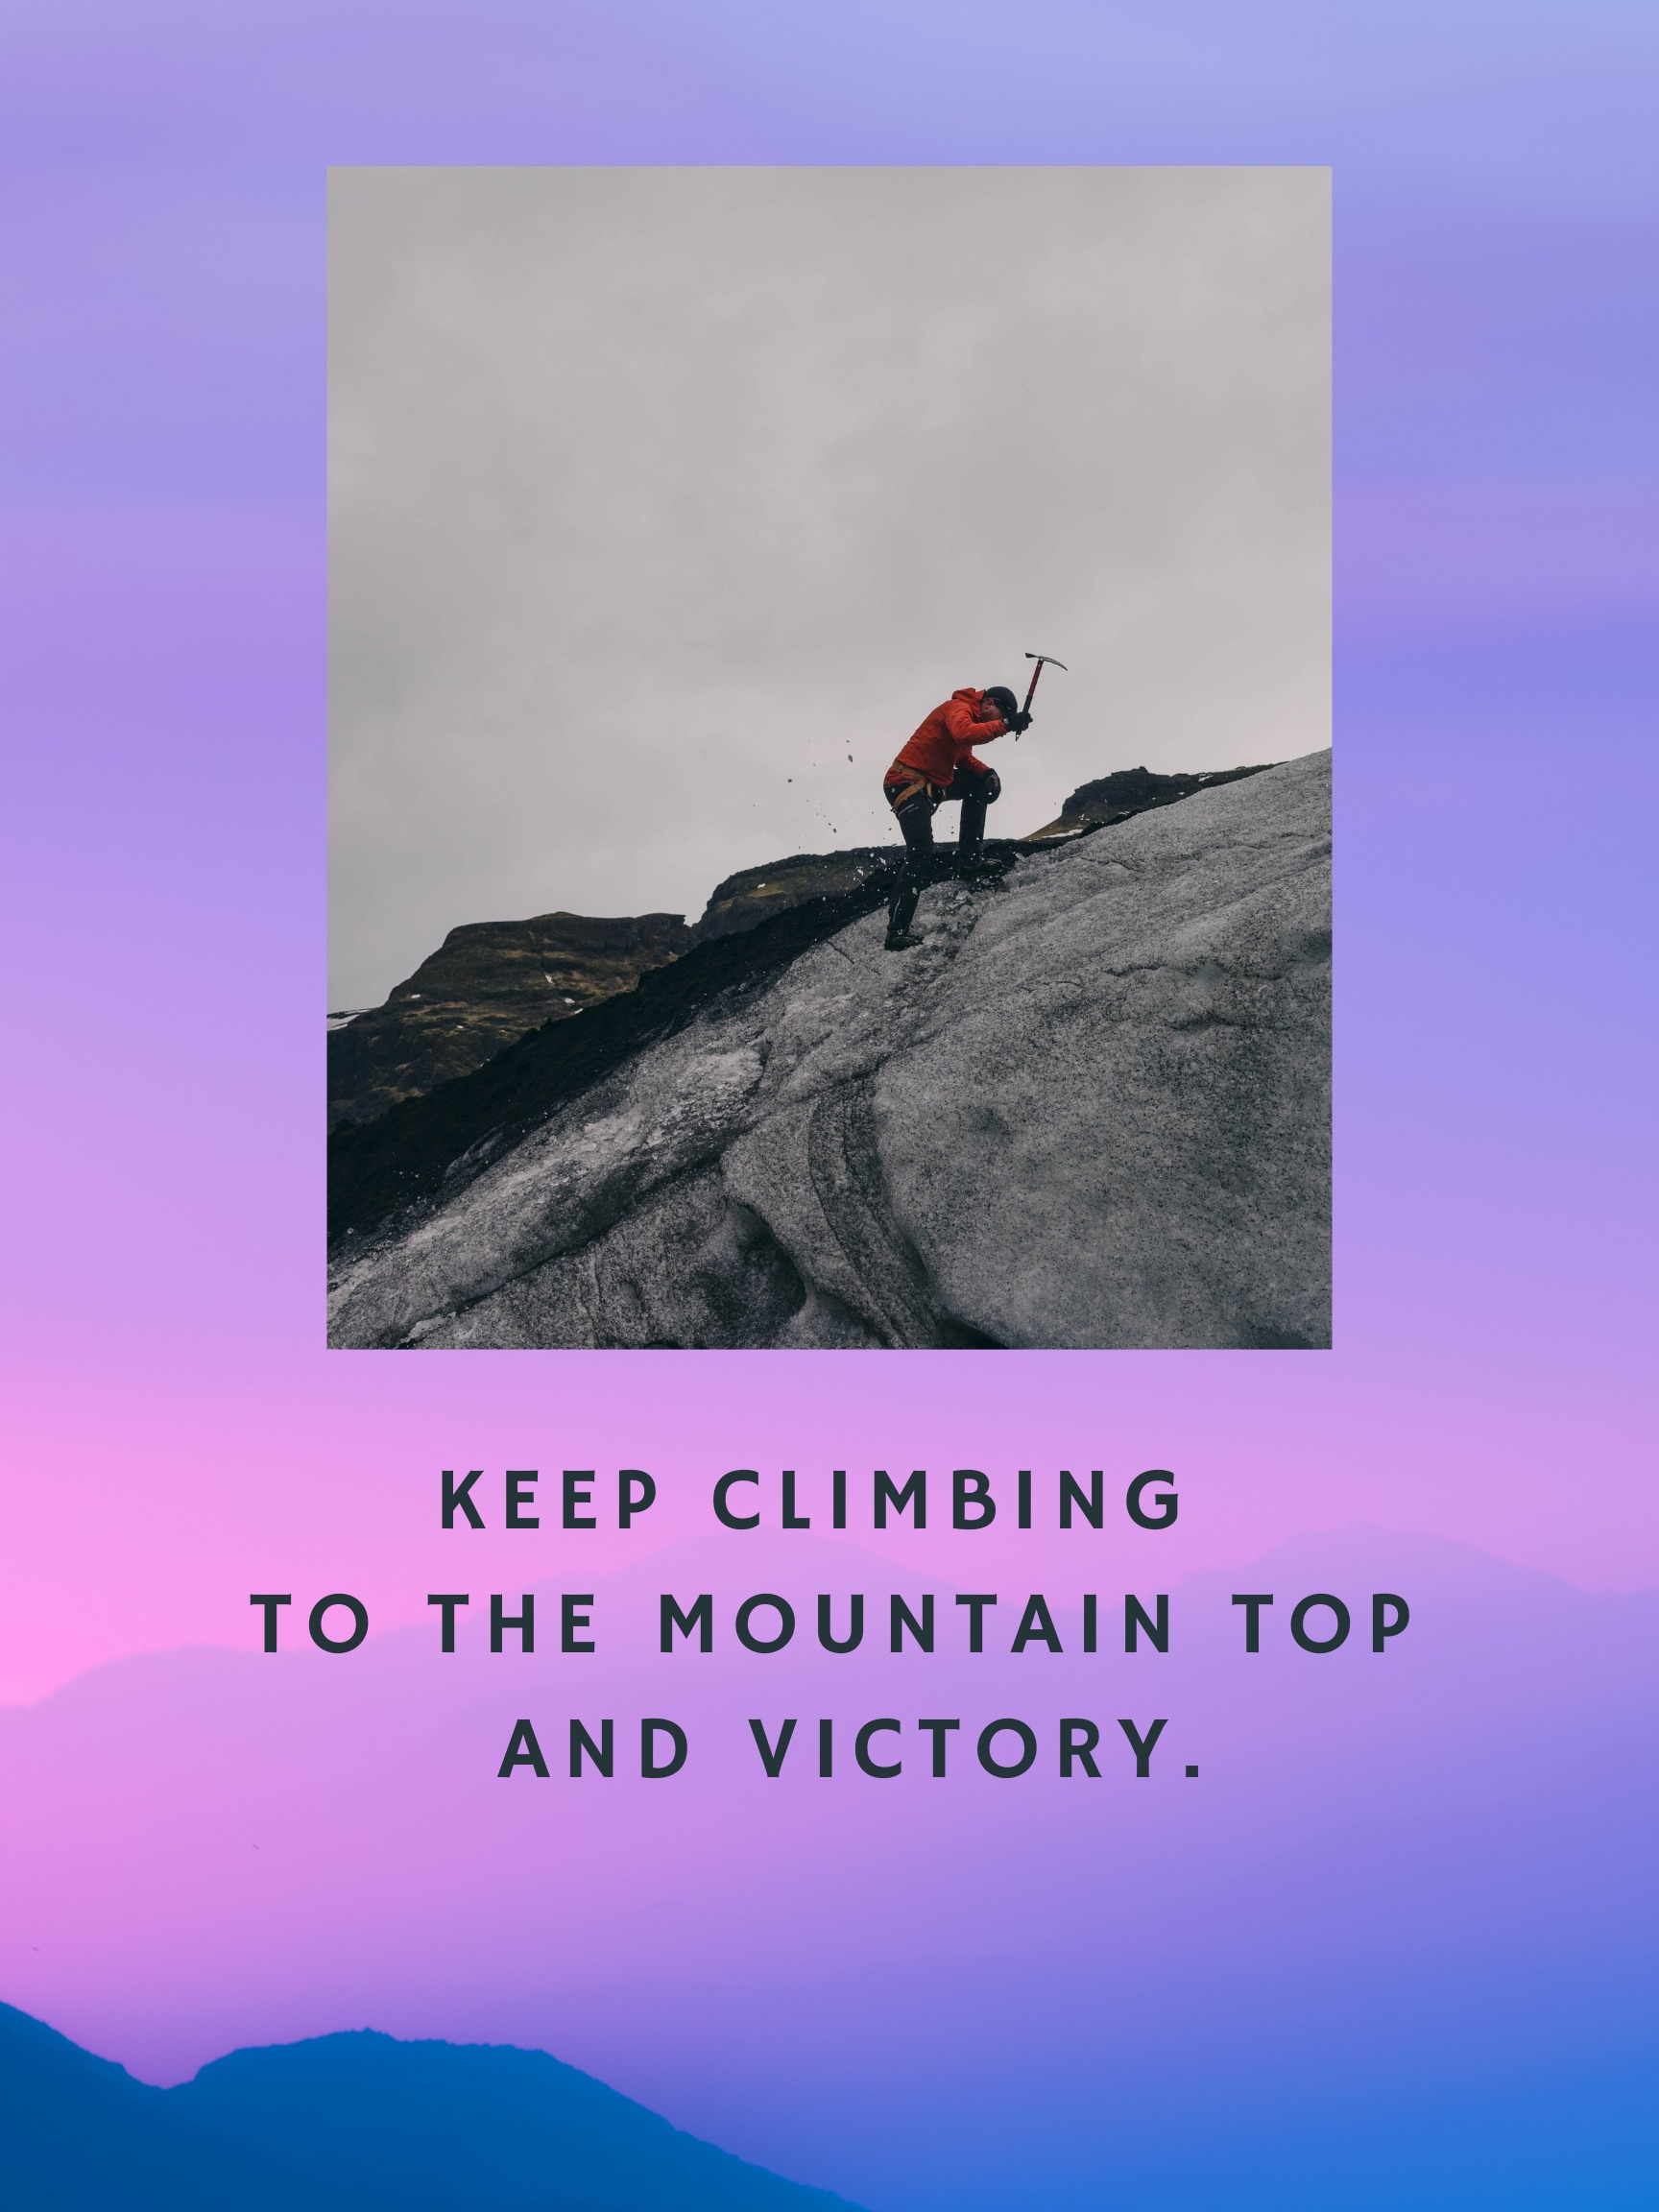 With every difficult step a man or women takes, the mountain top, the objective, gets closer and achievable.